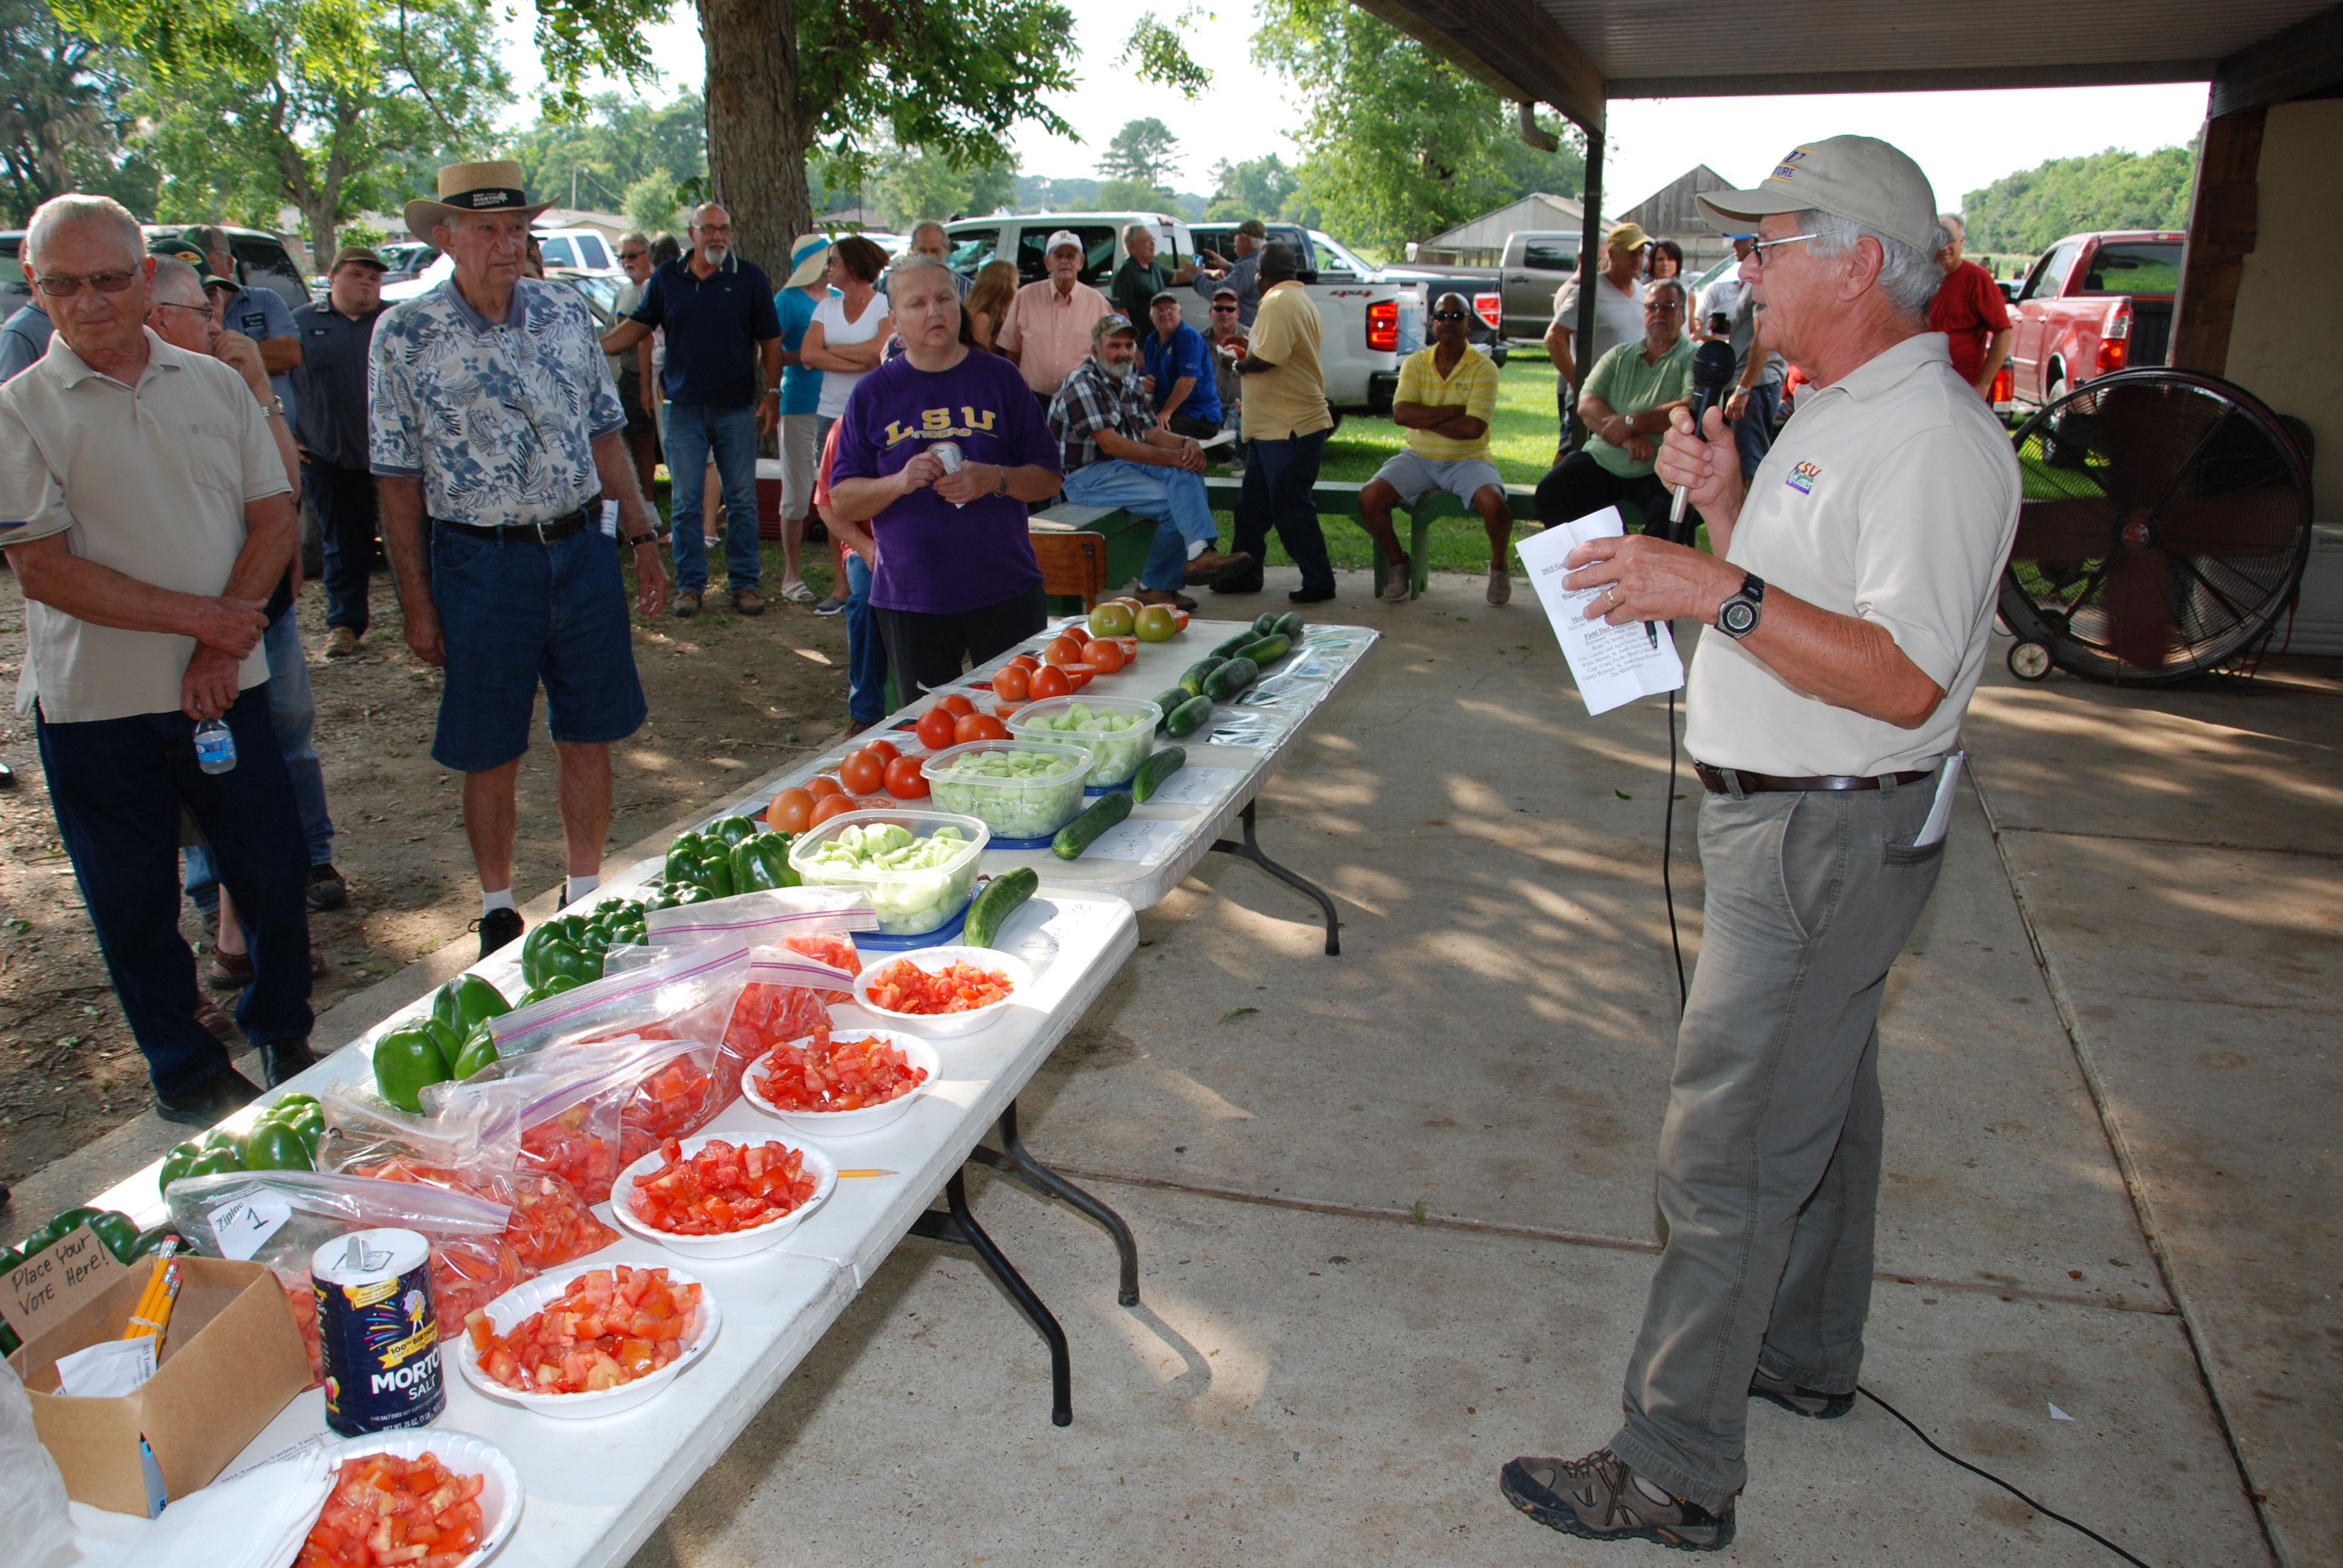 Tomato field day brings community together